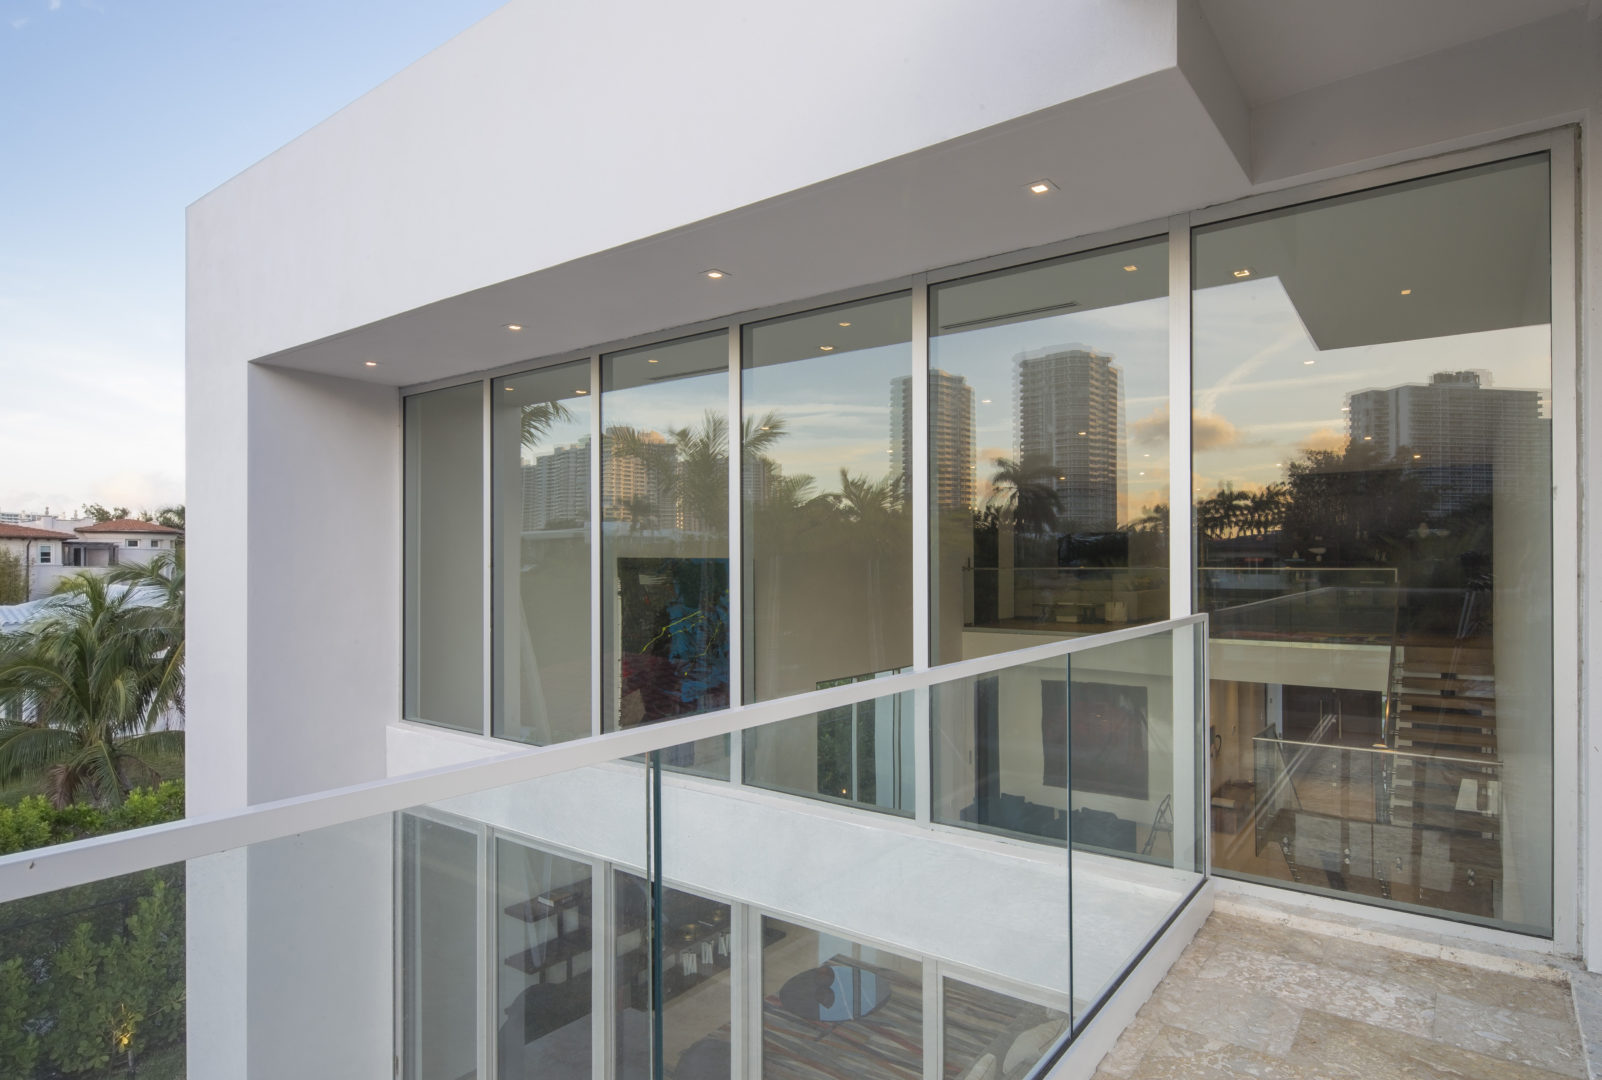 Golden Beach house modern luxury high-end miami contractor builder coral stone pool deck exterior outdoors balcony railing glass terrace